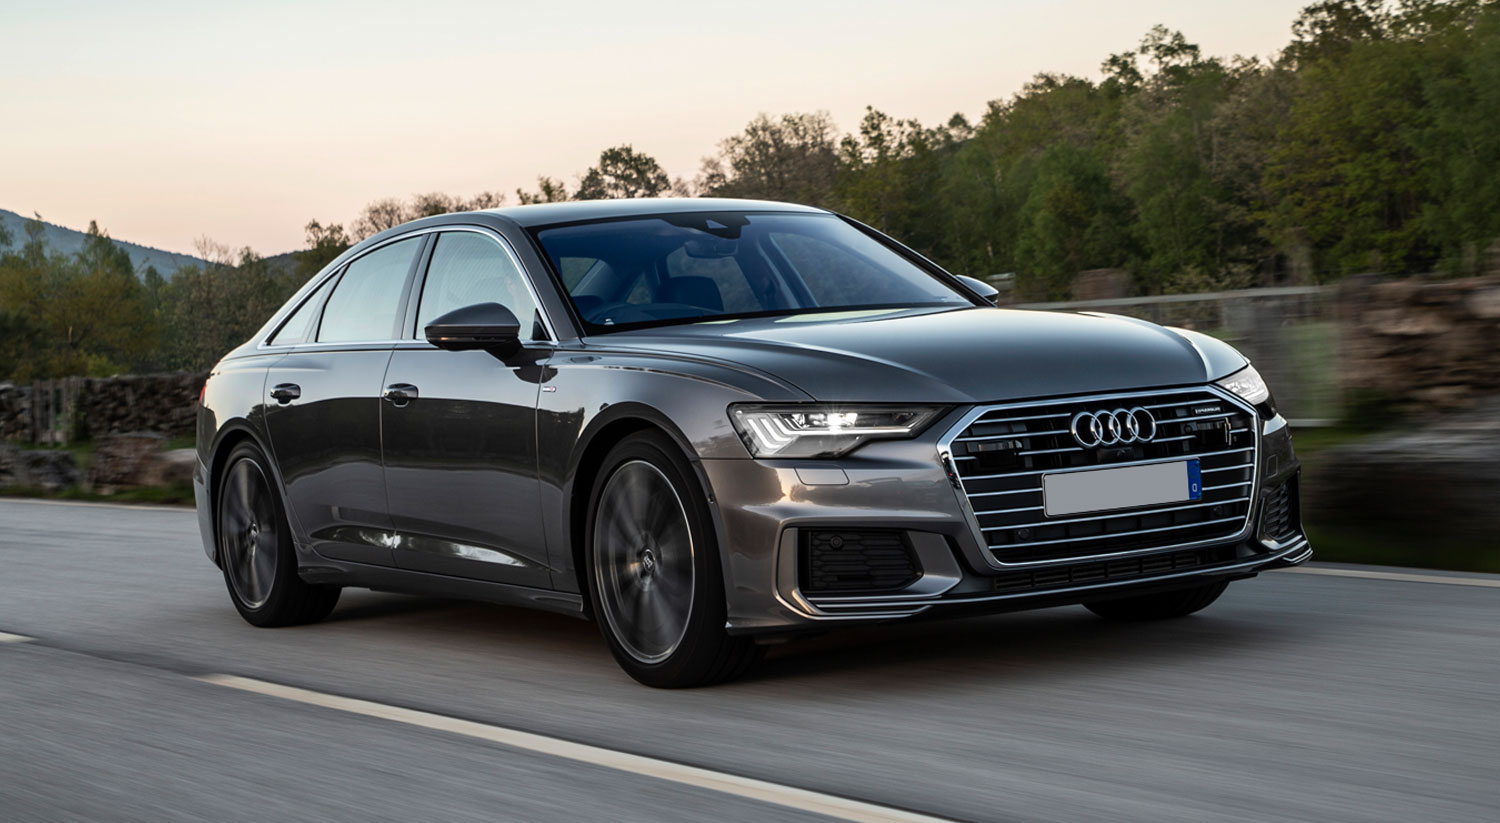 Audi A6 frontal